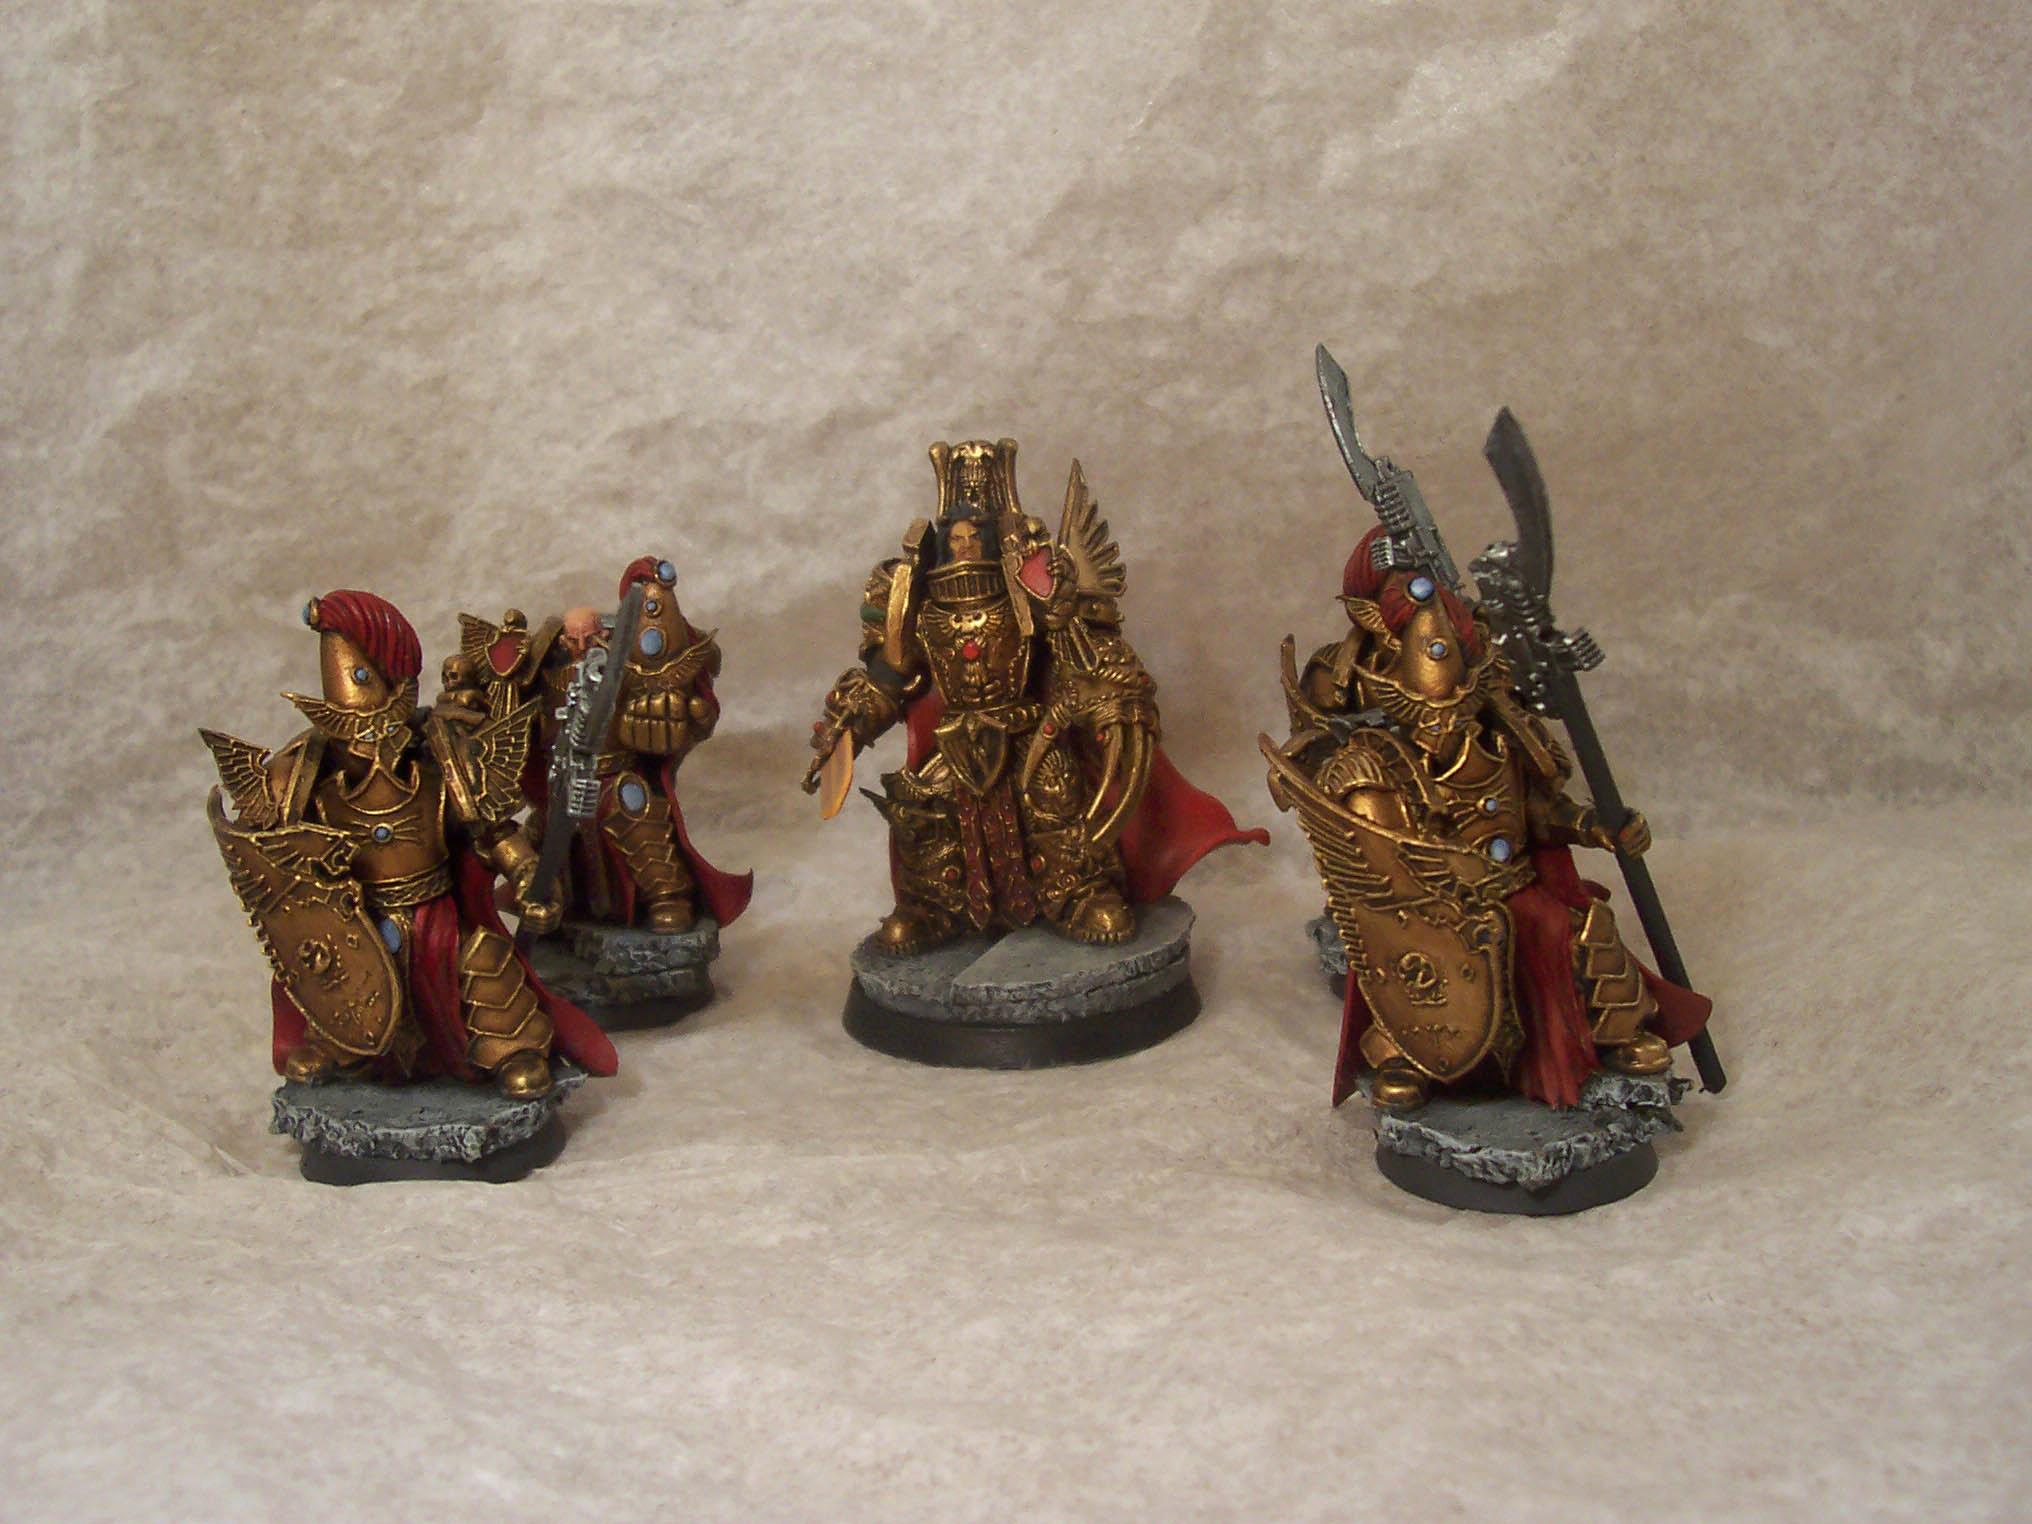 Conversion, Custodes, Custom, Emperor, Hero, Mankind, Space Marines, Warhammer 40,000